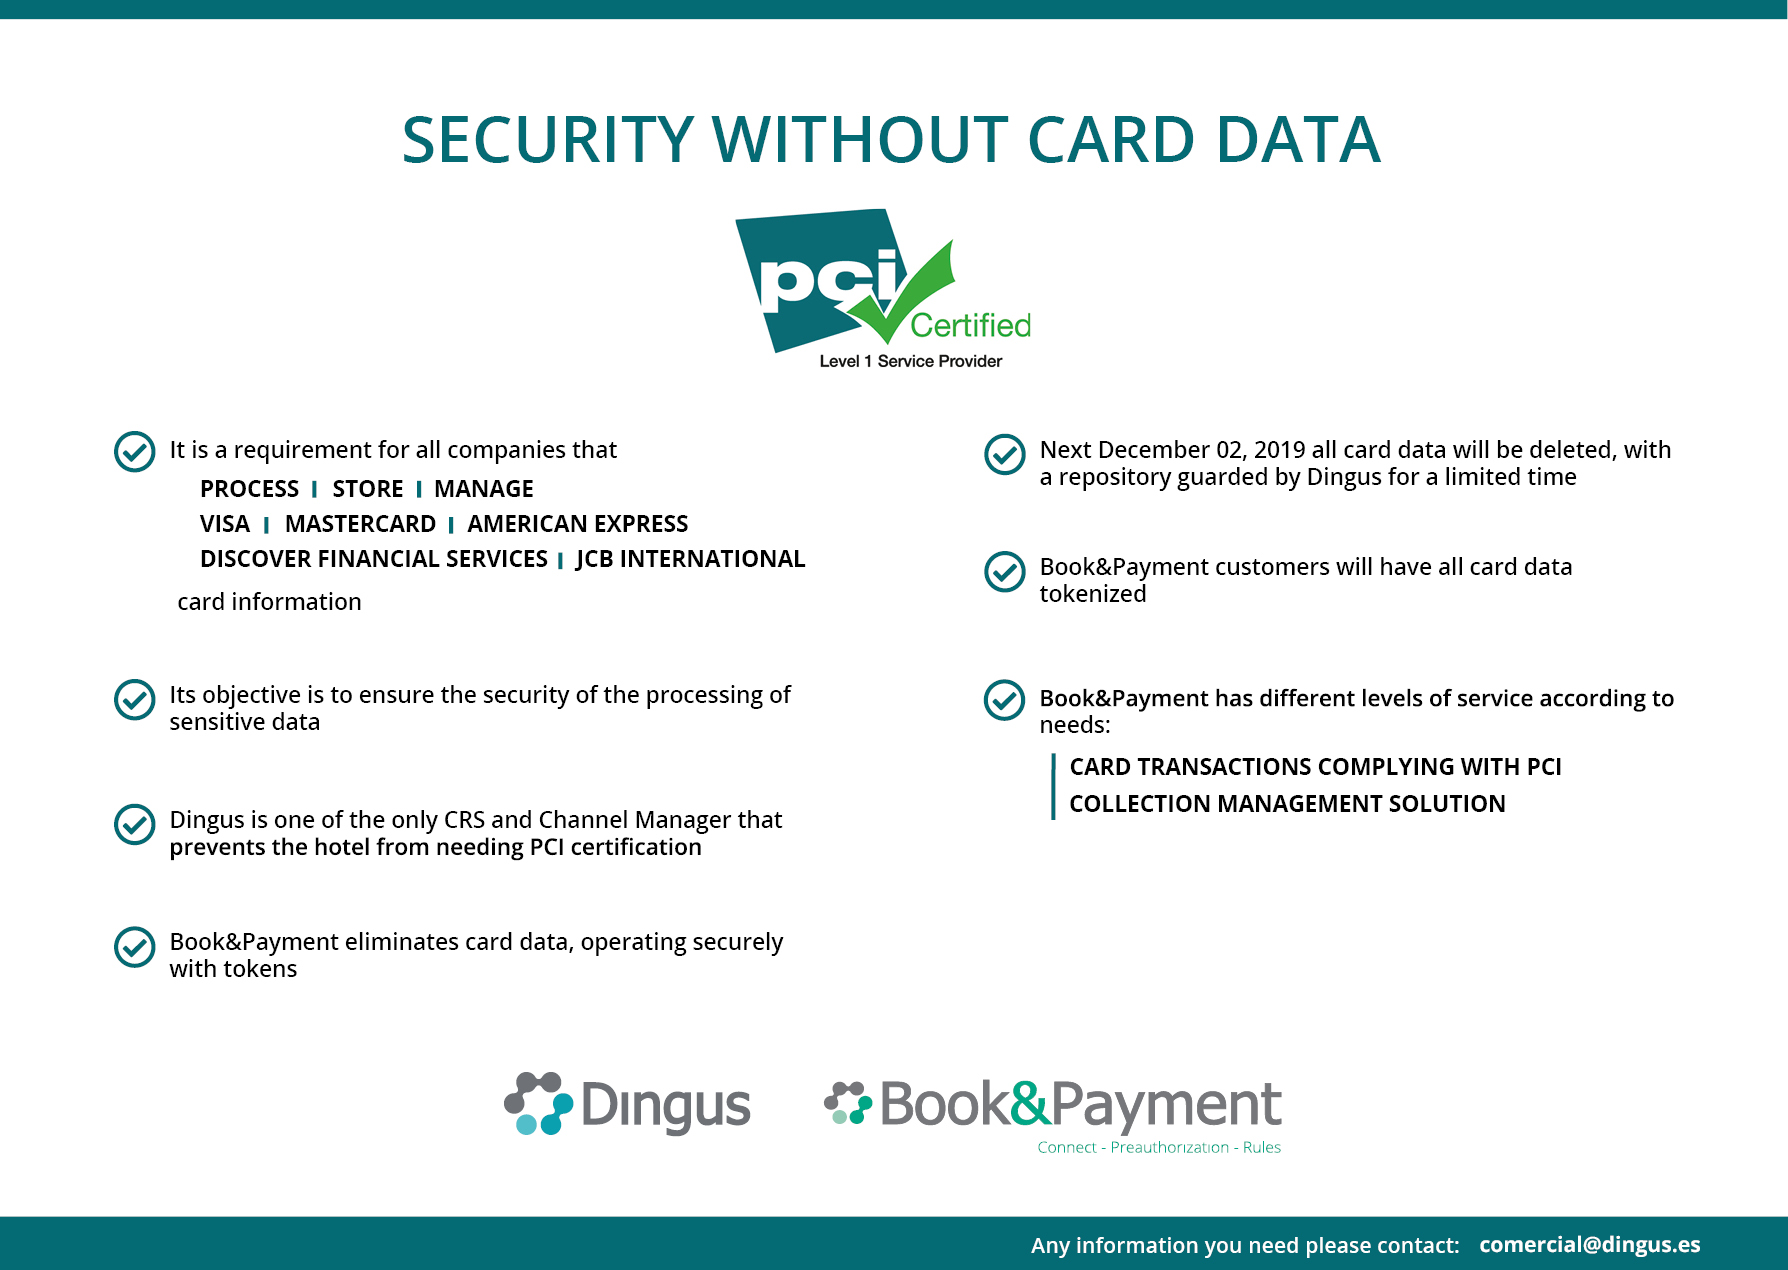 Security without card data